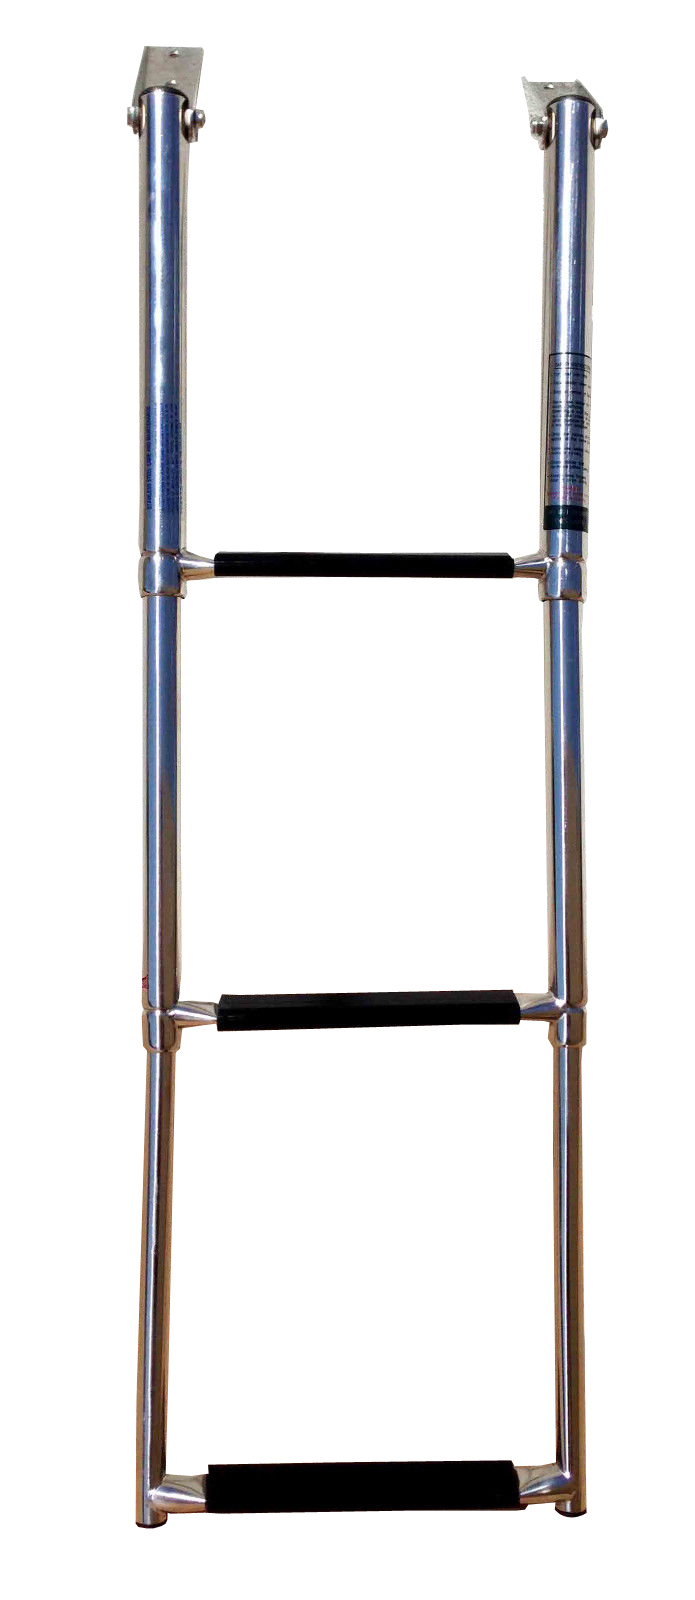 MARINE BOAT STAINLESS STEEL 3 STEP TELESCOPIC FOLDING LADDER W R